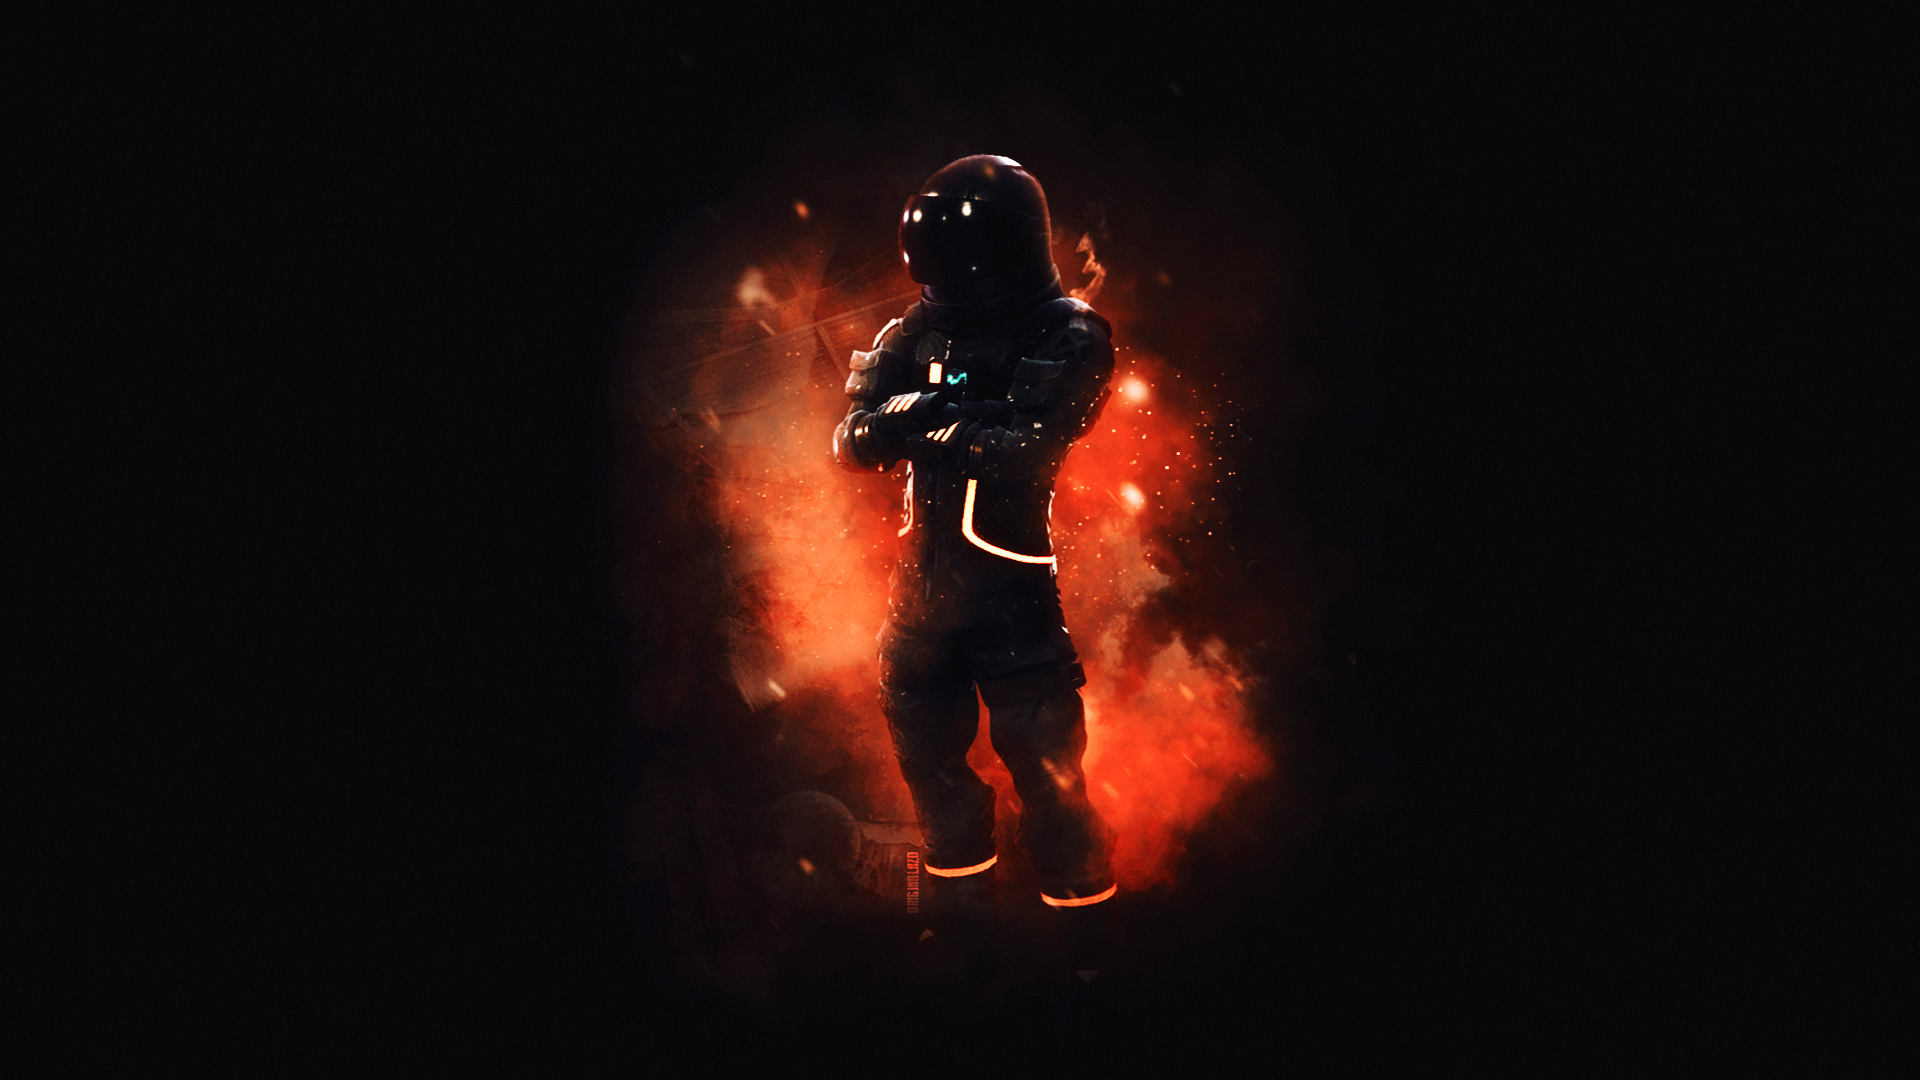 Dark Voyager Wallpaper EDIT FortNiteBR 1920x1080